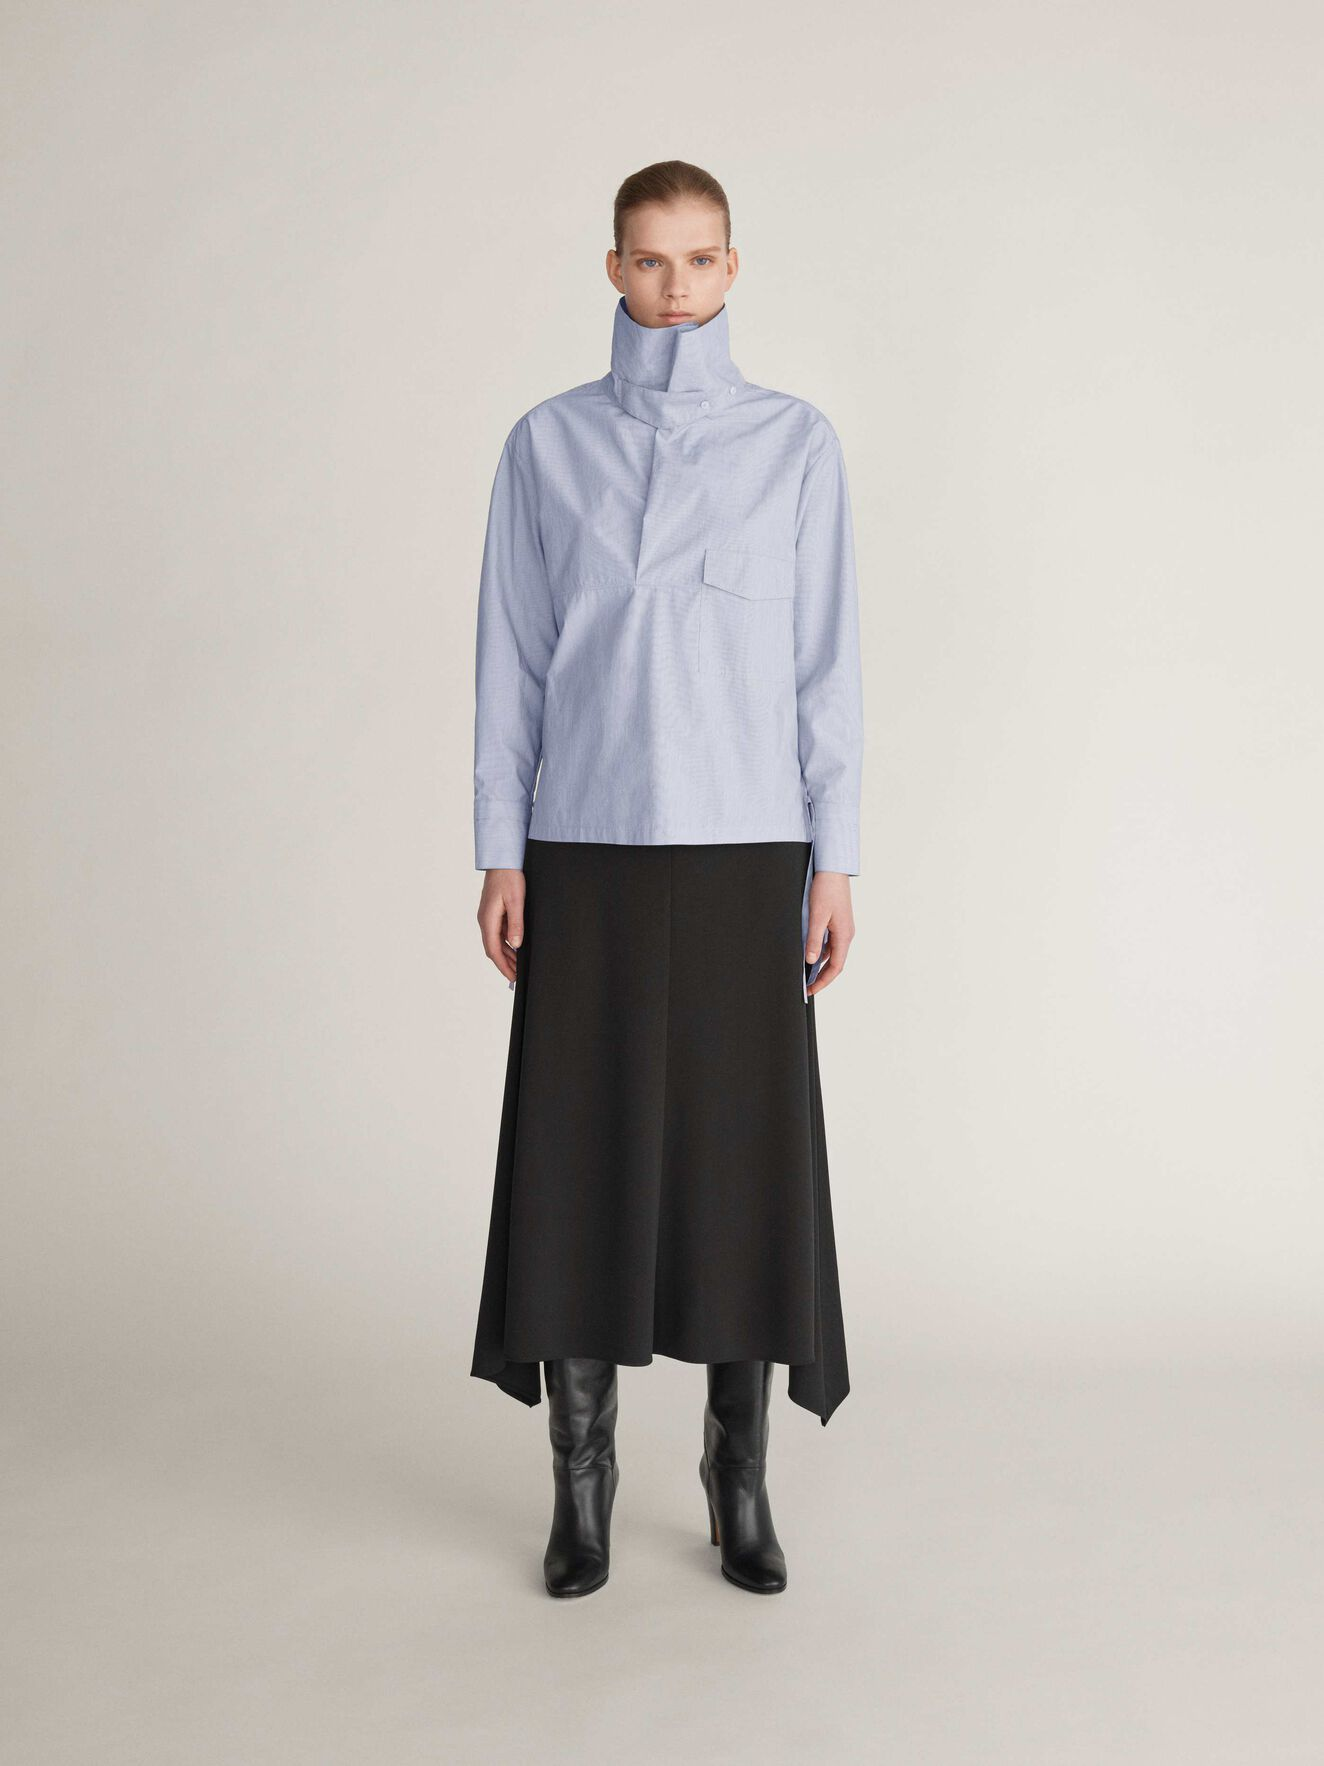 Karpell S Shirt in Soft Wave from Tiger of Sweden